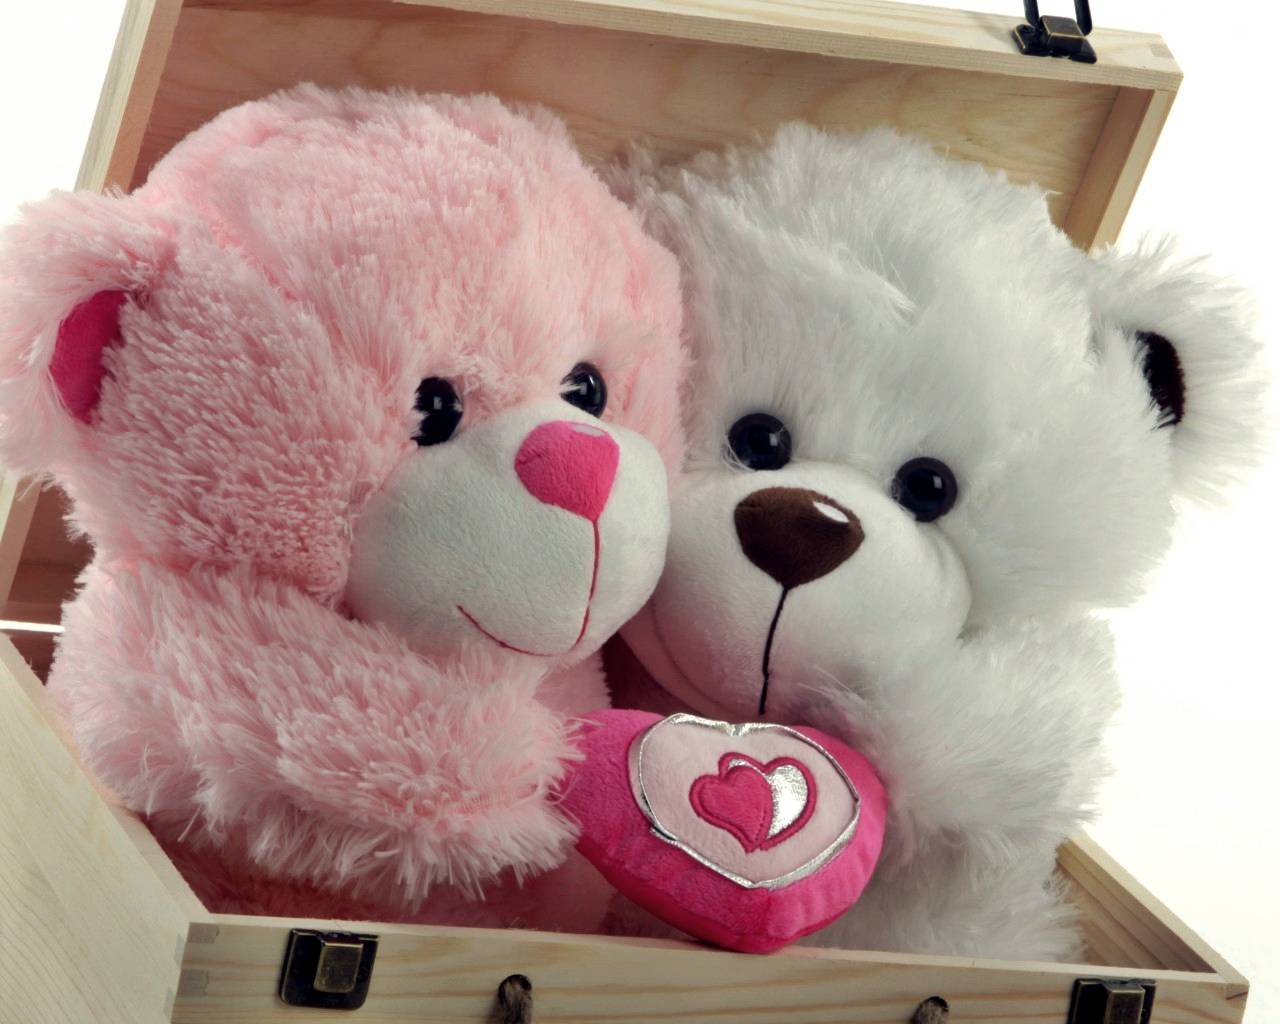 Teddy bear with love images - photo#9